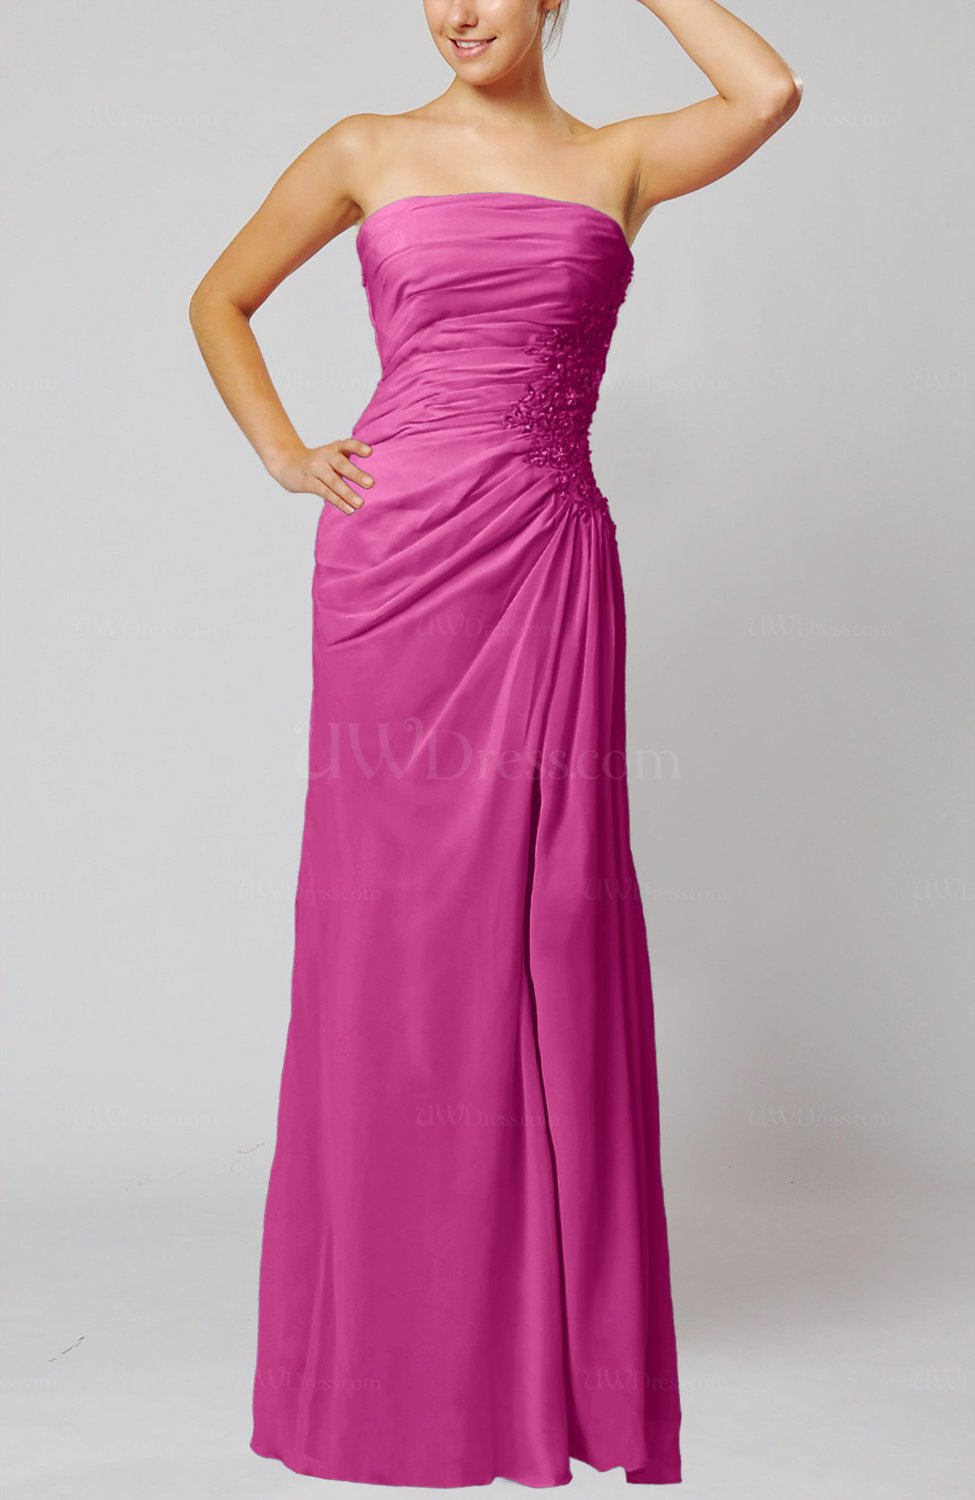 fb786391f7 Hot Pink Elegant Sheath Sleeveless Zip up Floor Length Bridesmaid Dresses  (Style D94572)